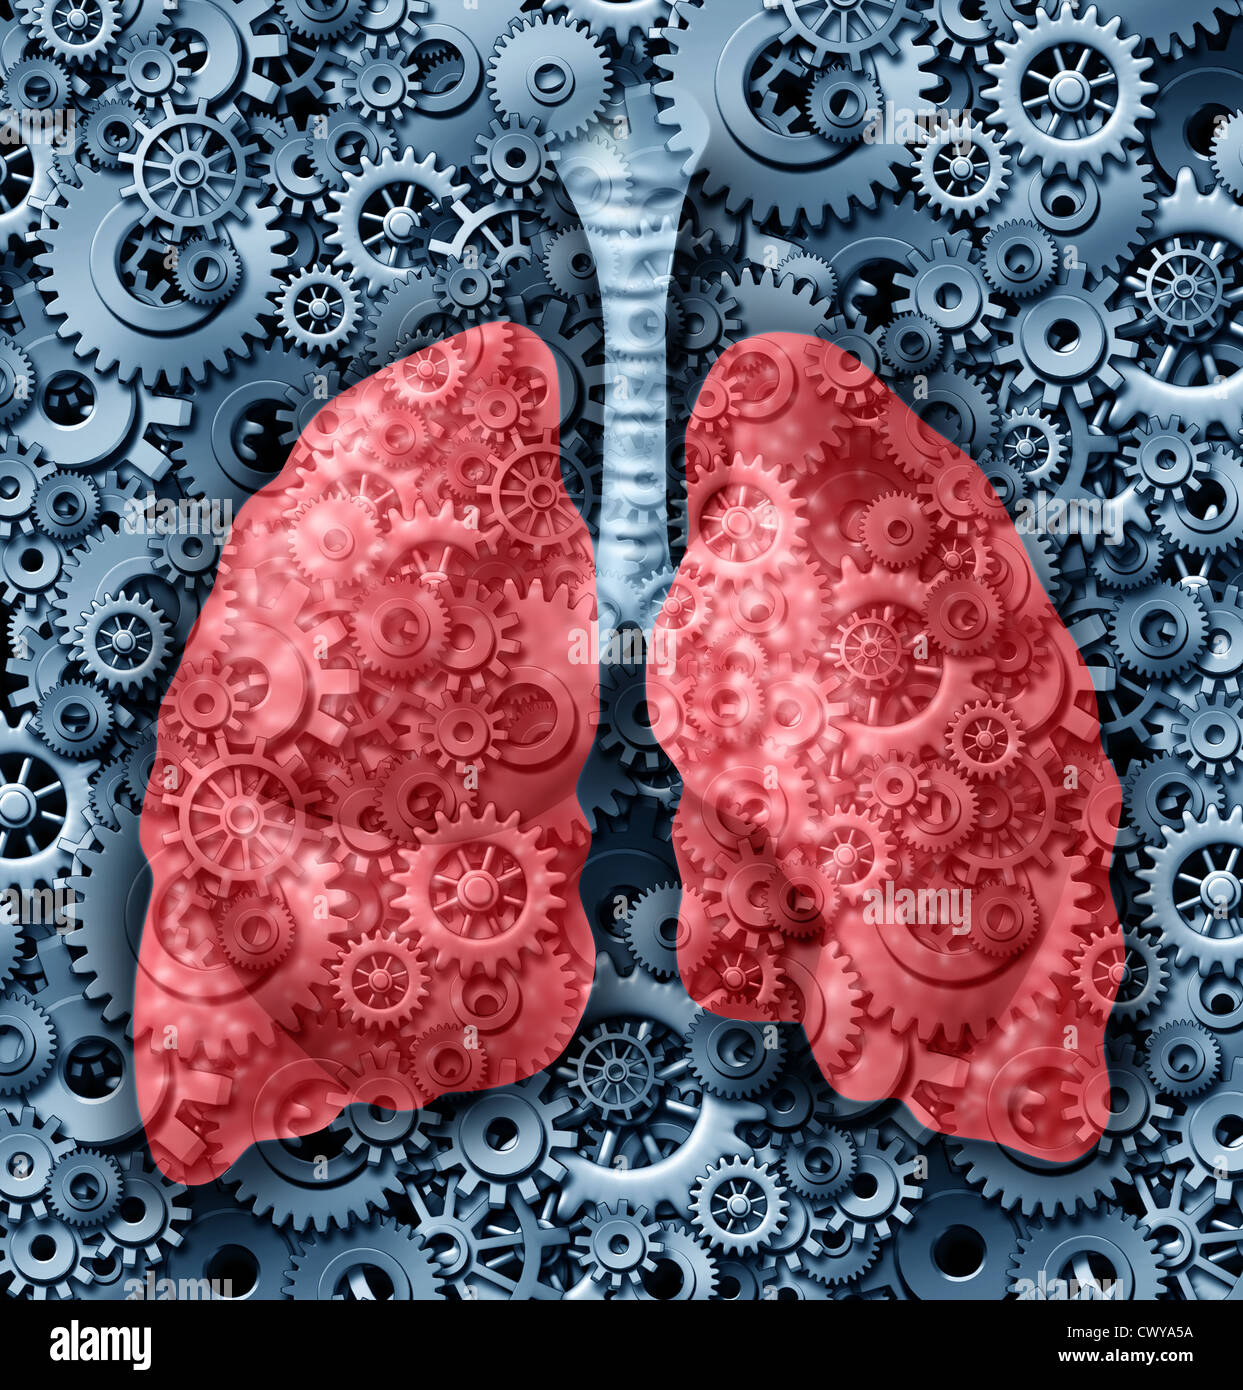 Human lungs health medical care symbol with gears and cogs connected together breathing oxygen representing the - Stock Image